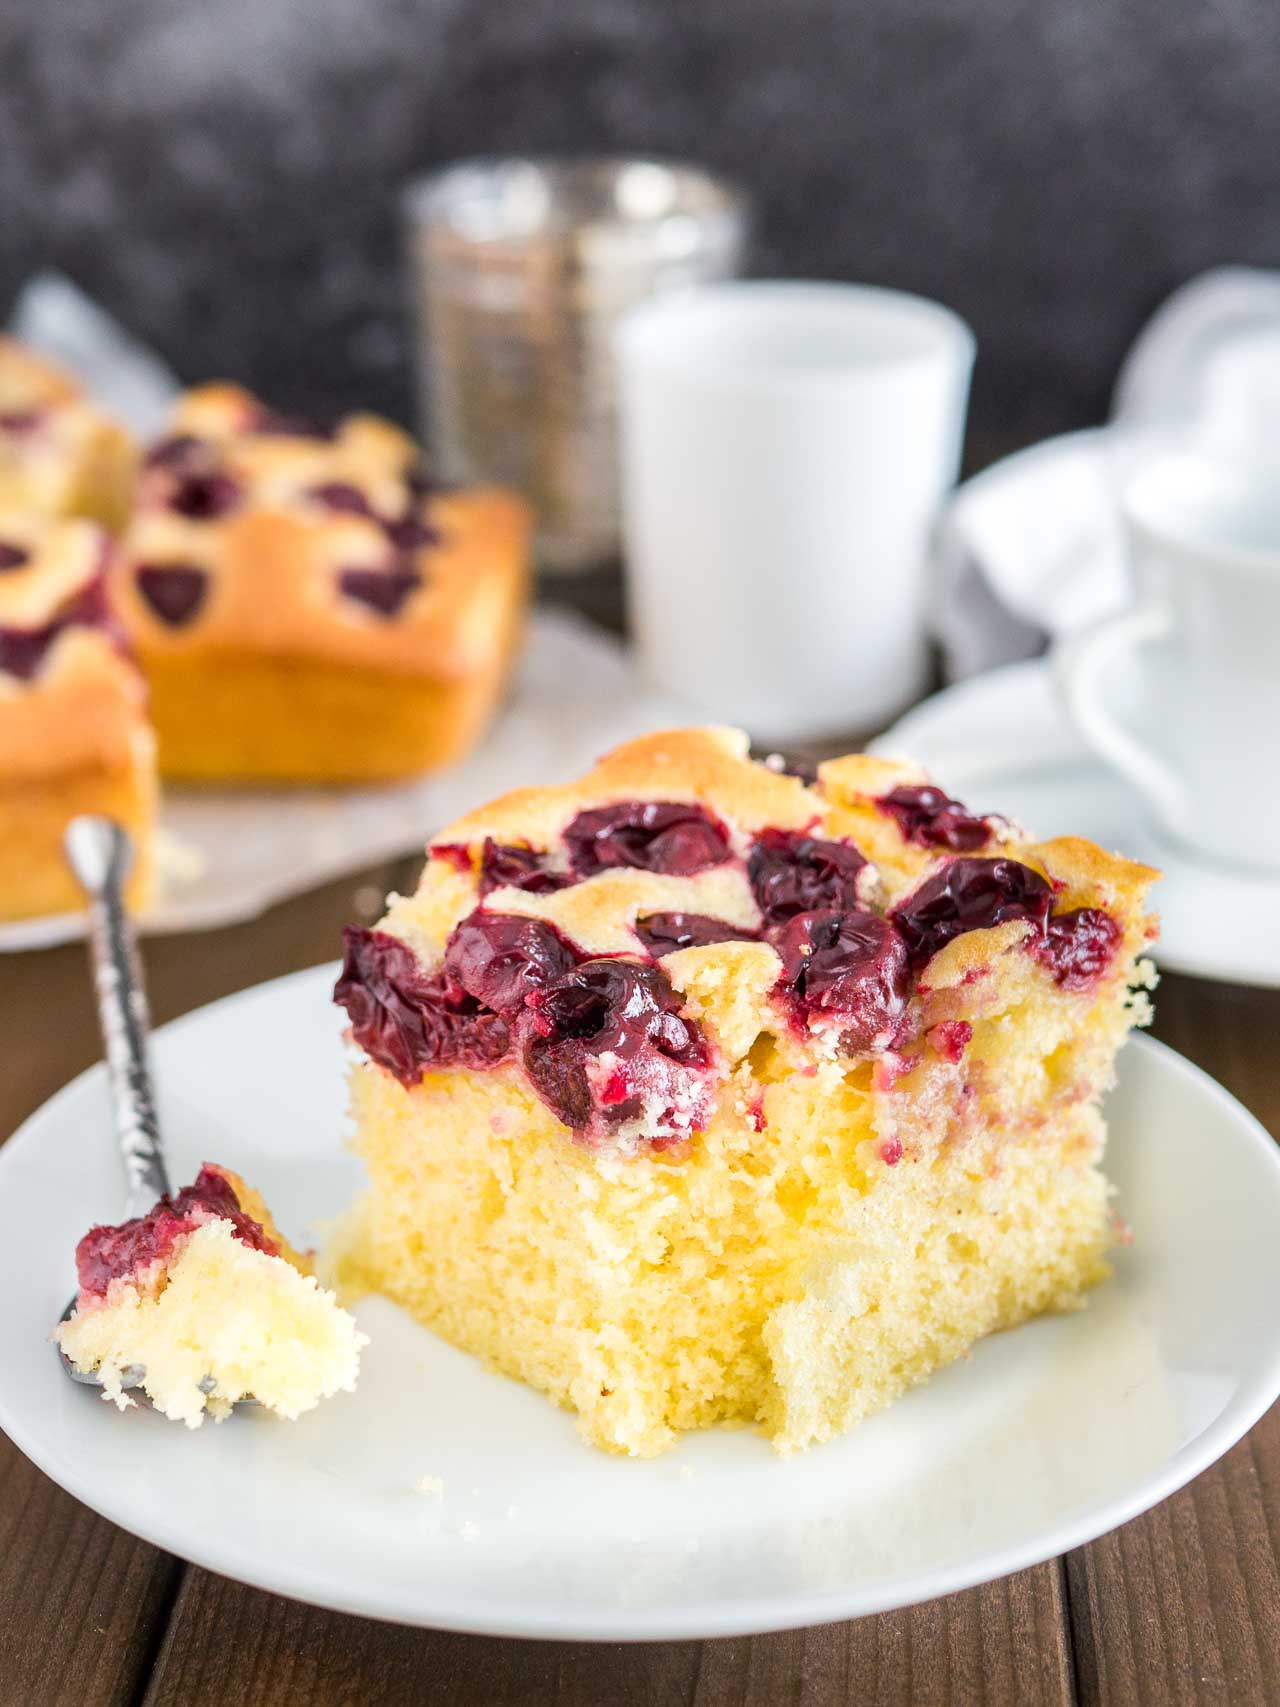 Cherry Cake With Sour Cherries And Vanilla Is A Simple Snack That Tastes Delicious So Easy To Make In Less Than 10 Minutes